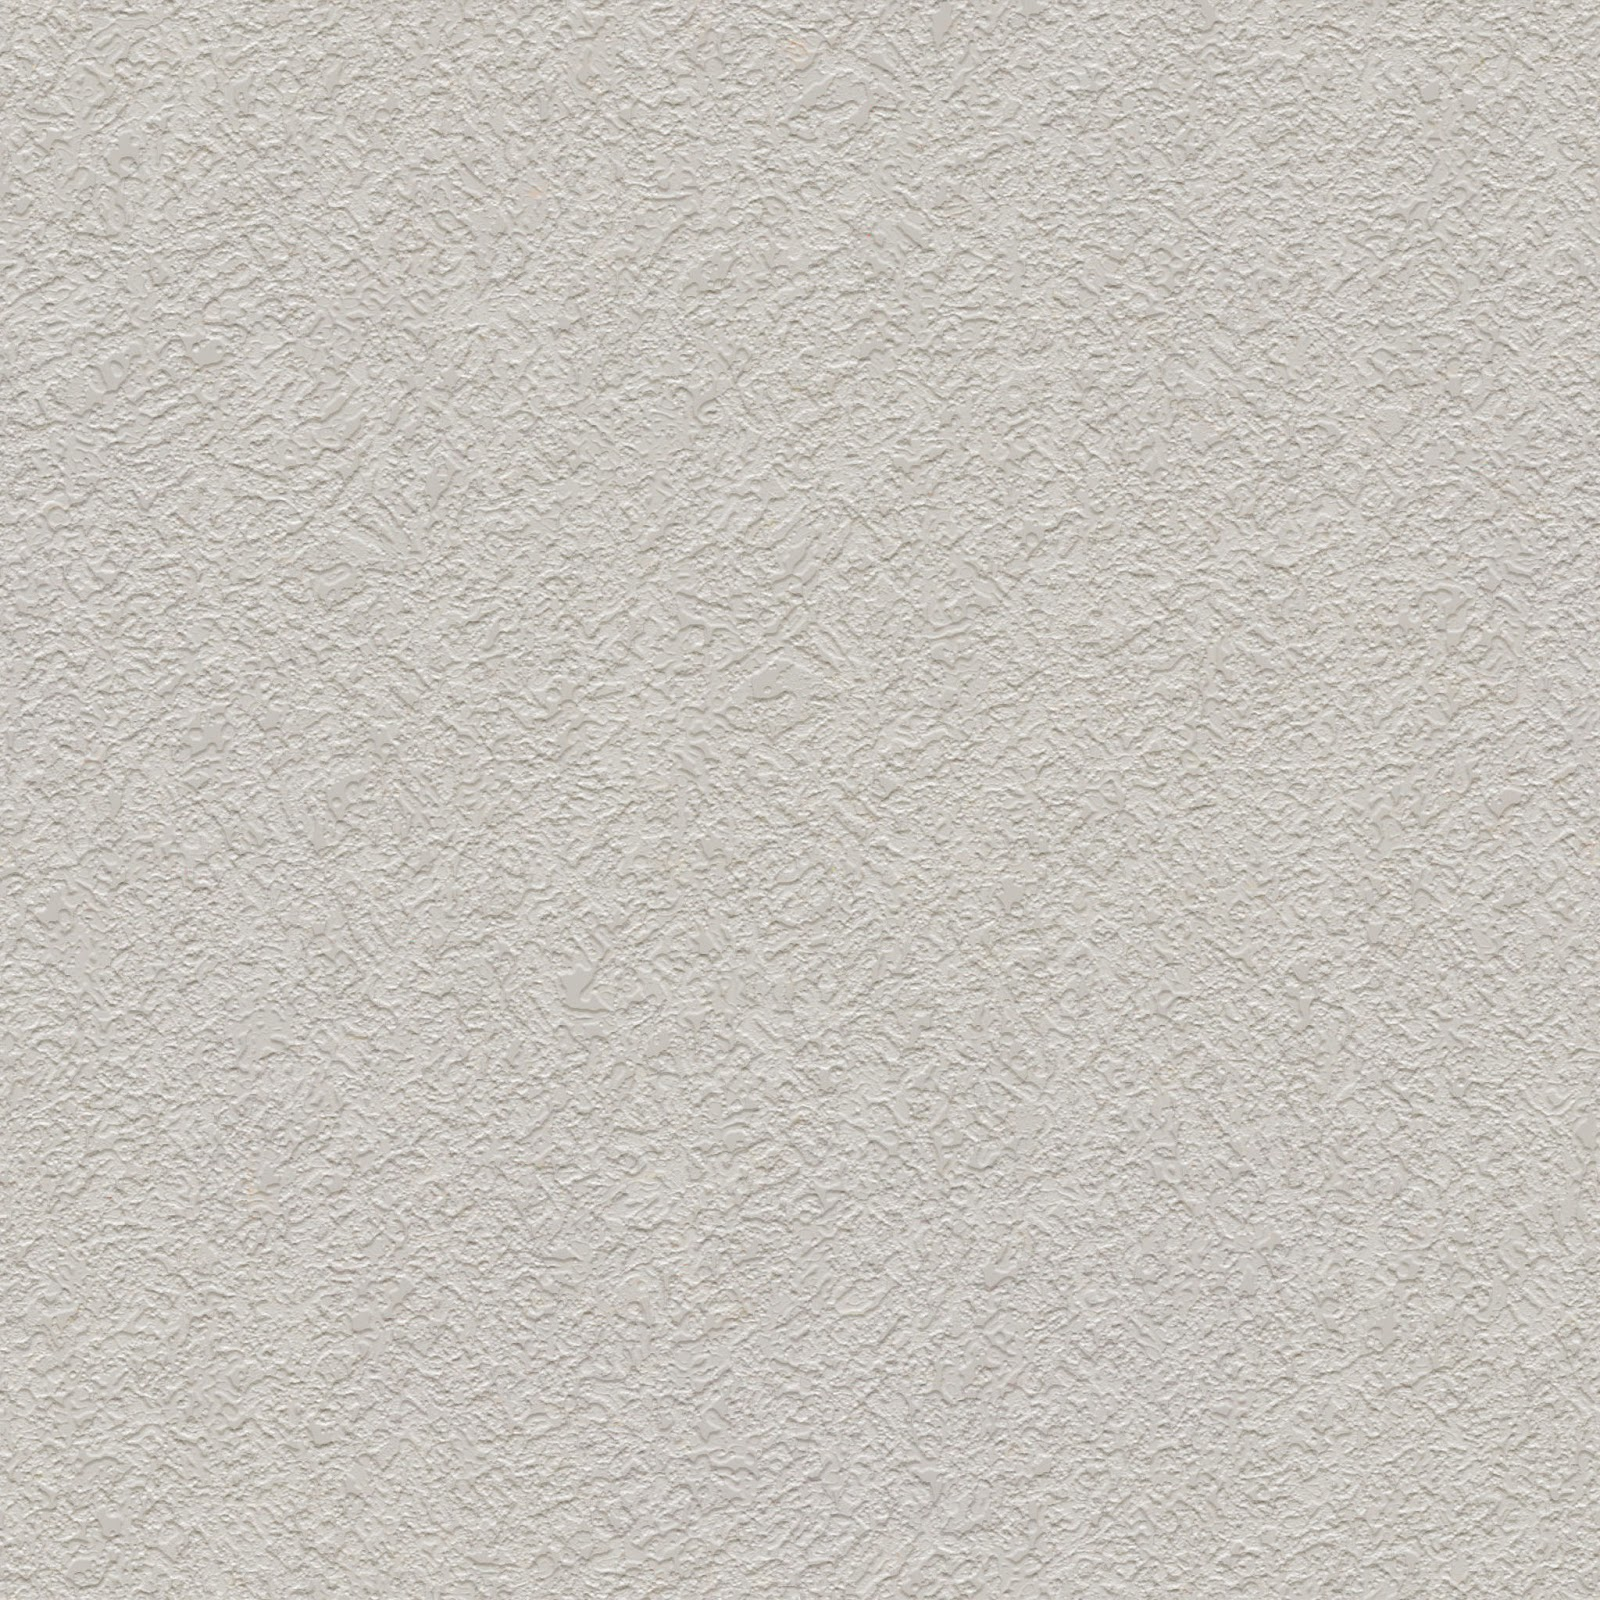 Rough_dirty_stucco_white_paint_plaster_wall_texture_seamless_tileable